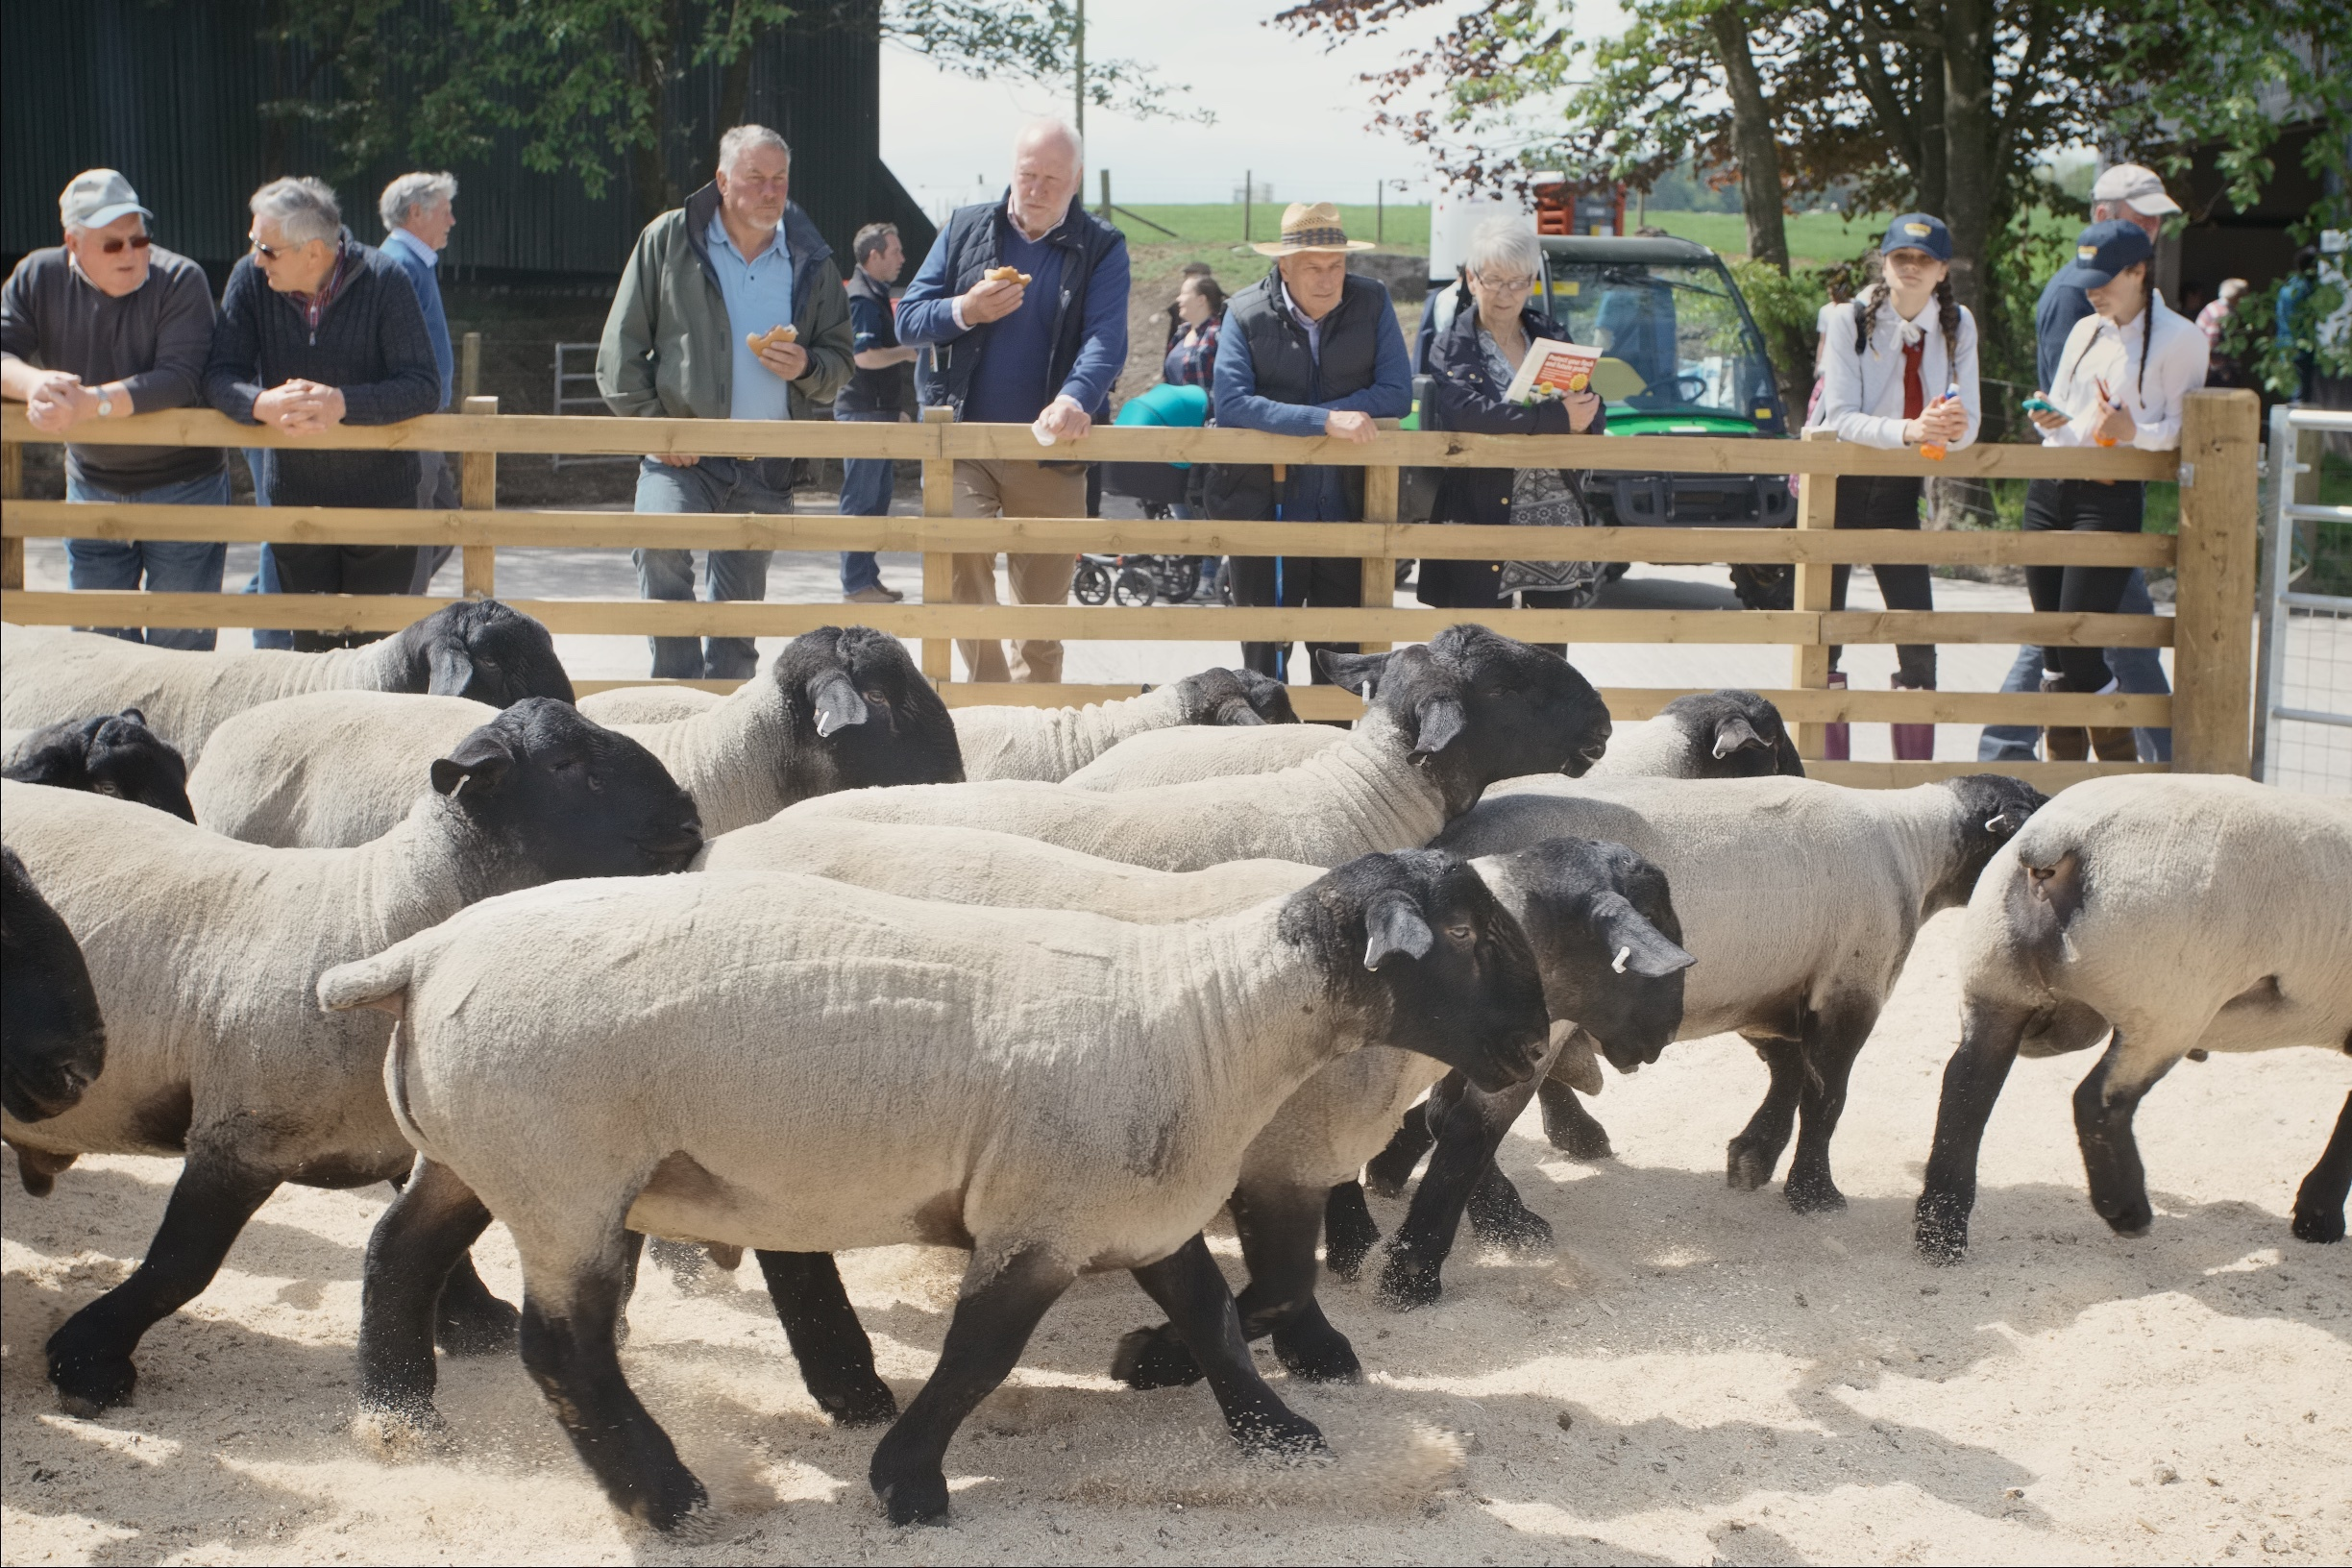 Consumers want high welfare animals that roam outdoors, Scotsheep was told